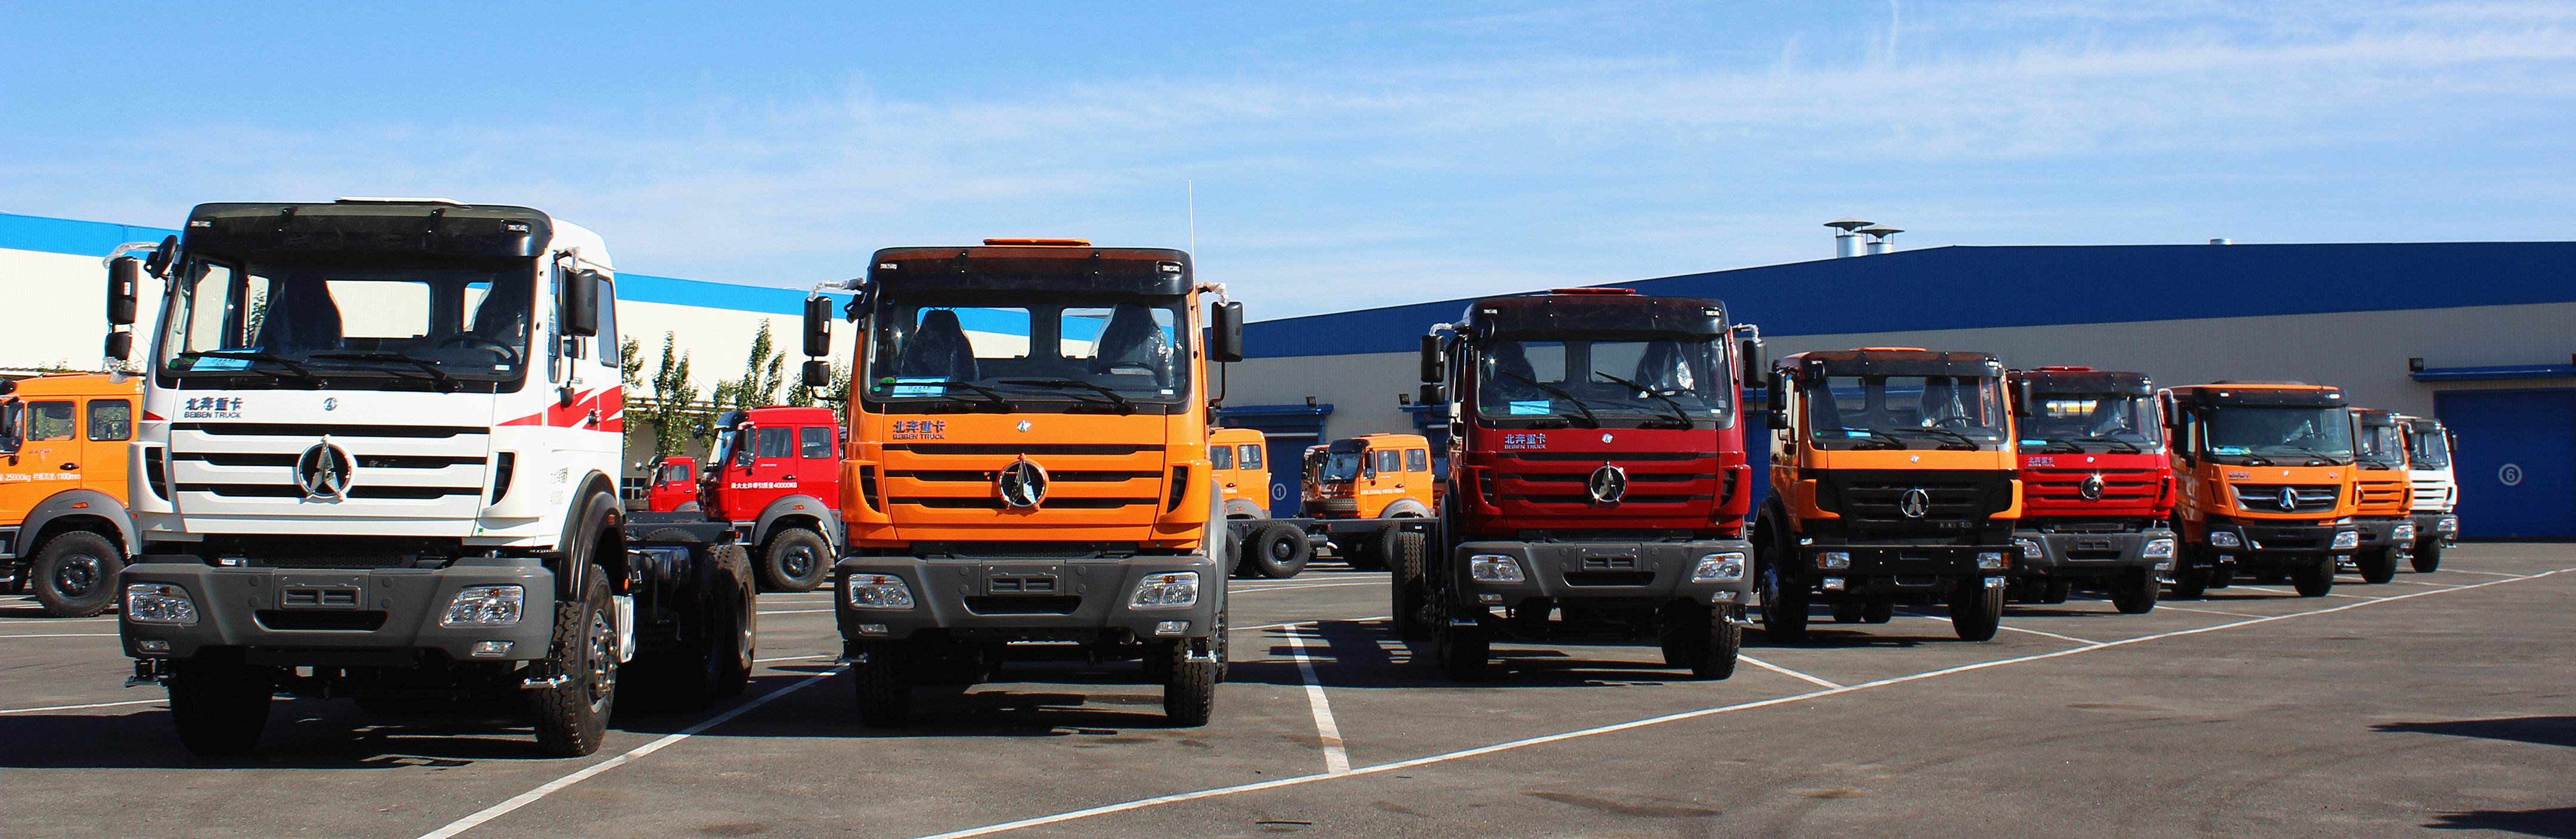 Beiben tractor trucks in factory stock for quick delivery